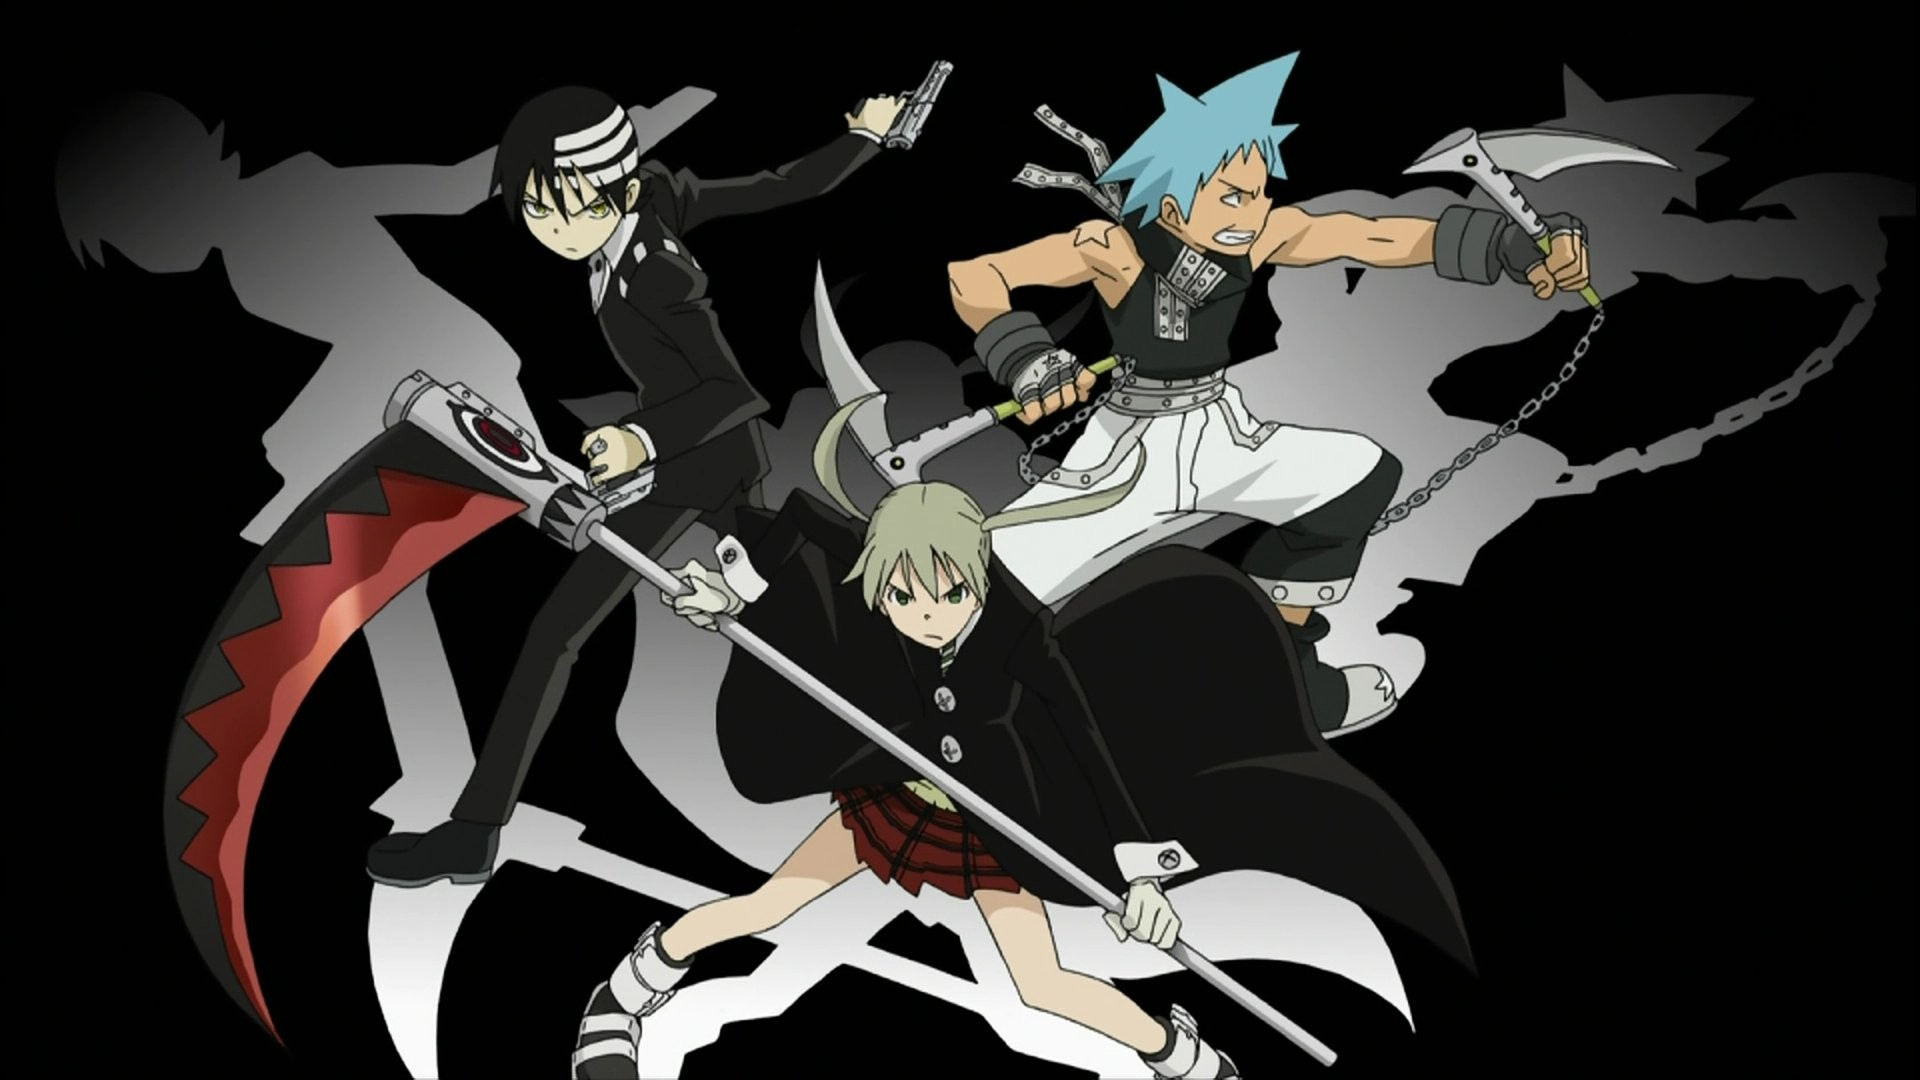 1920x1080 Soul Eater Wallpapers 19 - 1920 X 1080